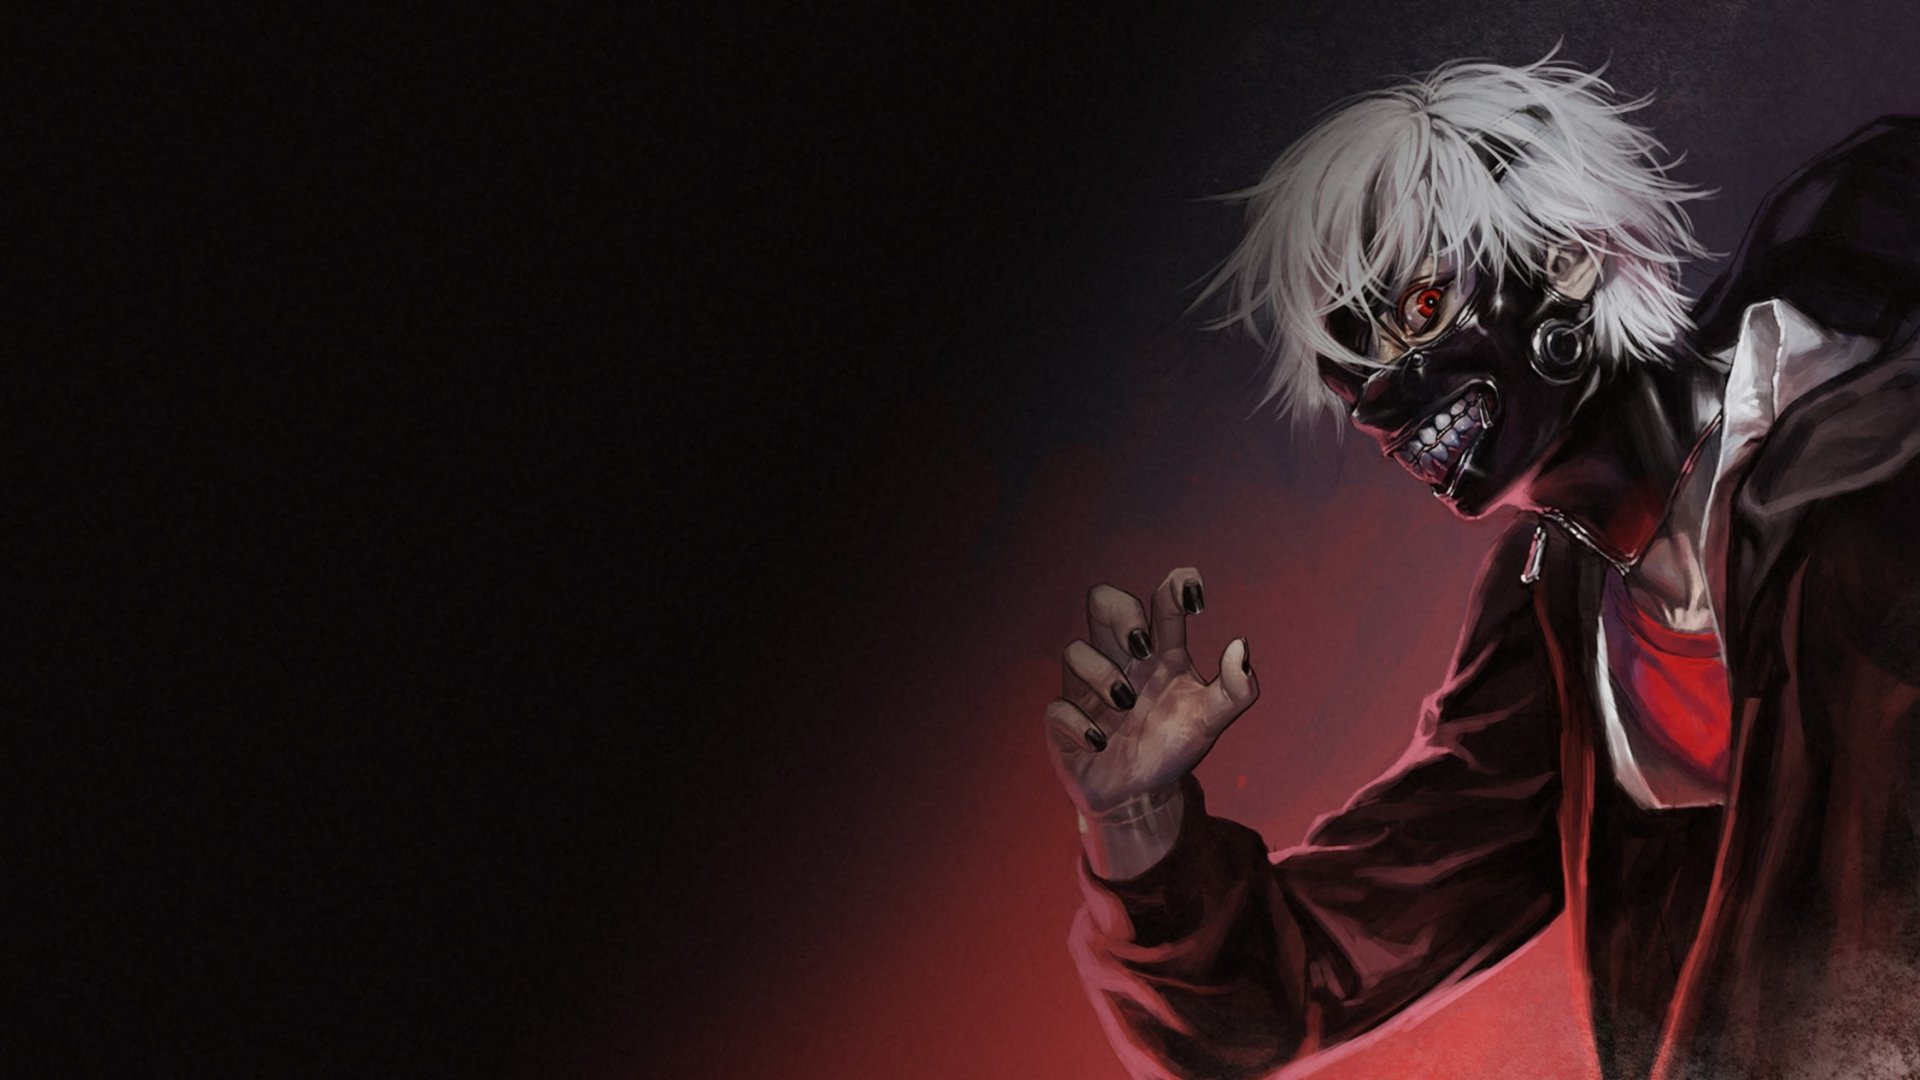 This article is a comprehensive guide for wallpapering around unusual spaces, like windows, archways, outlets, faceplates, fixtures, thermostats, and more. Dual Monitor Wallpaper Tokyo Ghoul - Bakaninime